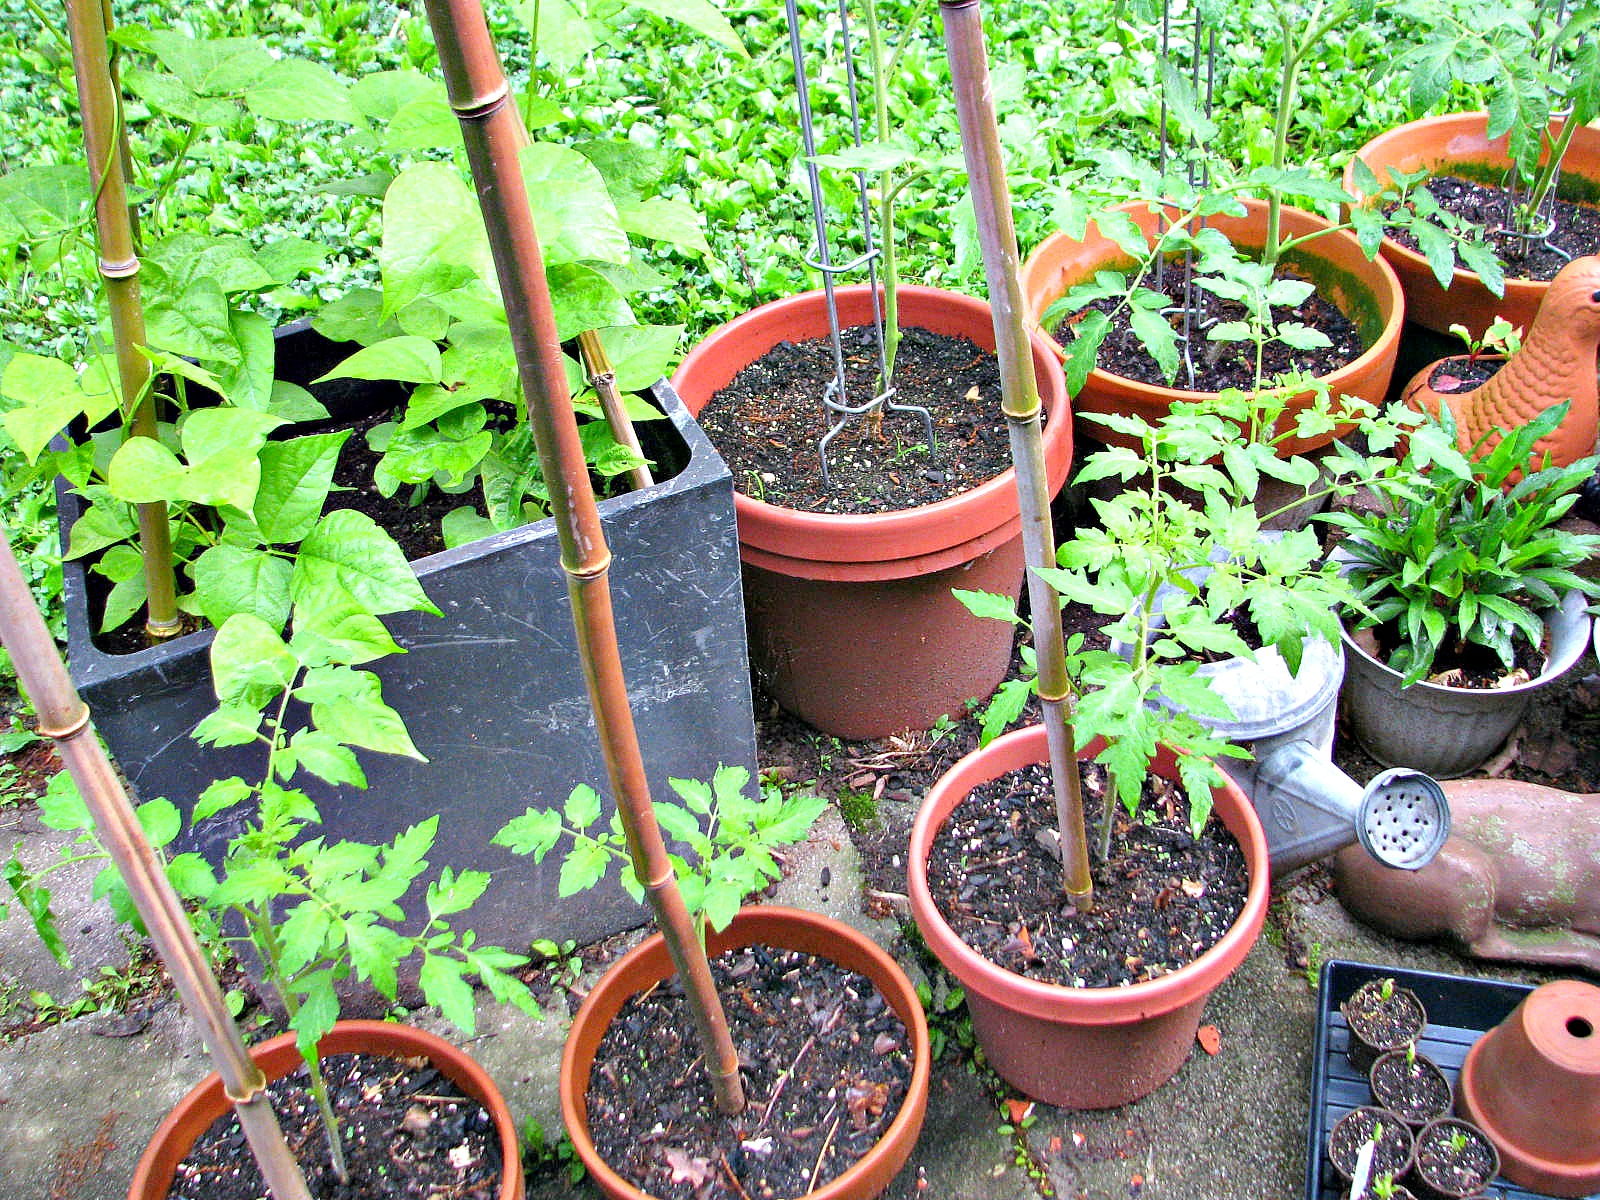 Growing bush beans in containers - I Am So Excited About These Plants Because I Have Never Grown Tomatoes From Seed Before The Pots In These Photos Are Only A Third Of Our Crop Of Tomatoes